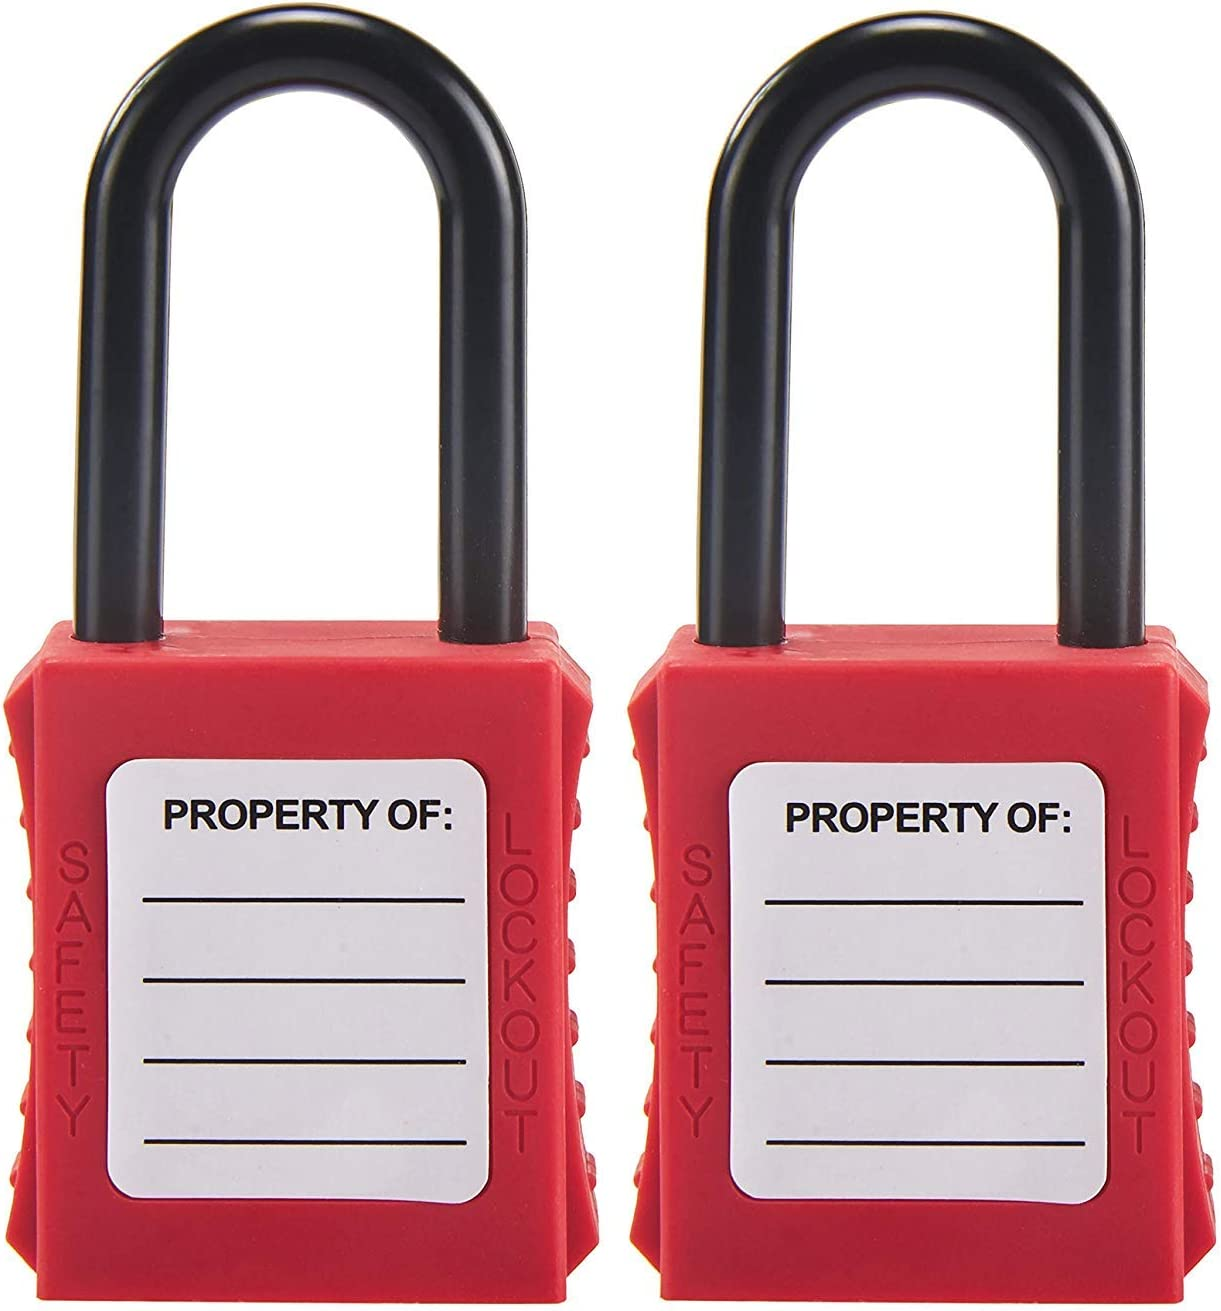 2Pcs Red Durable Lock Safety Padlock Keyed Different for Lockout//Tagout